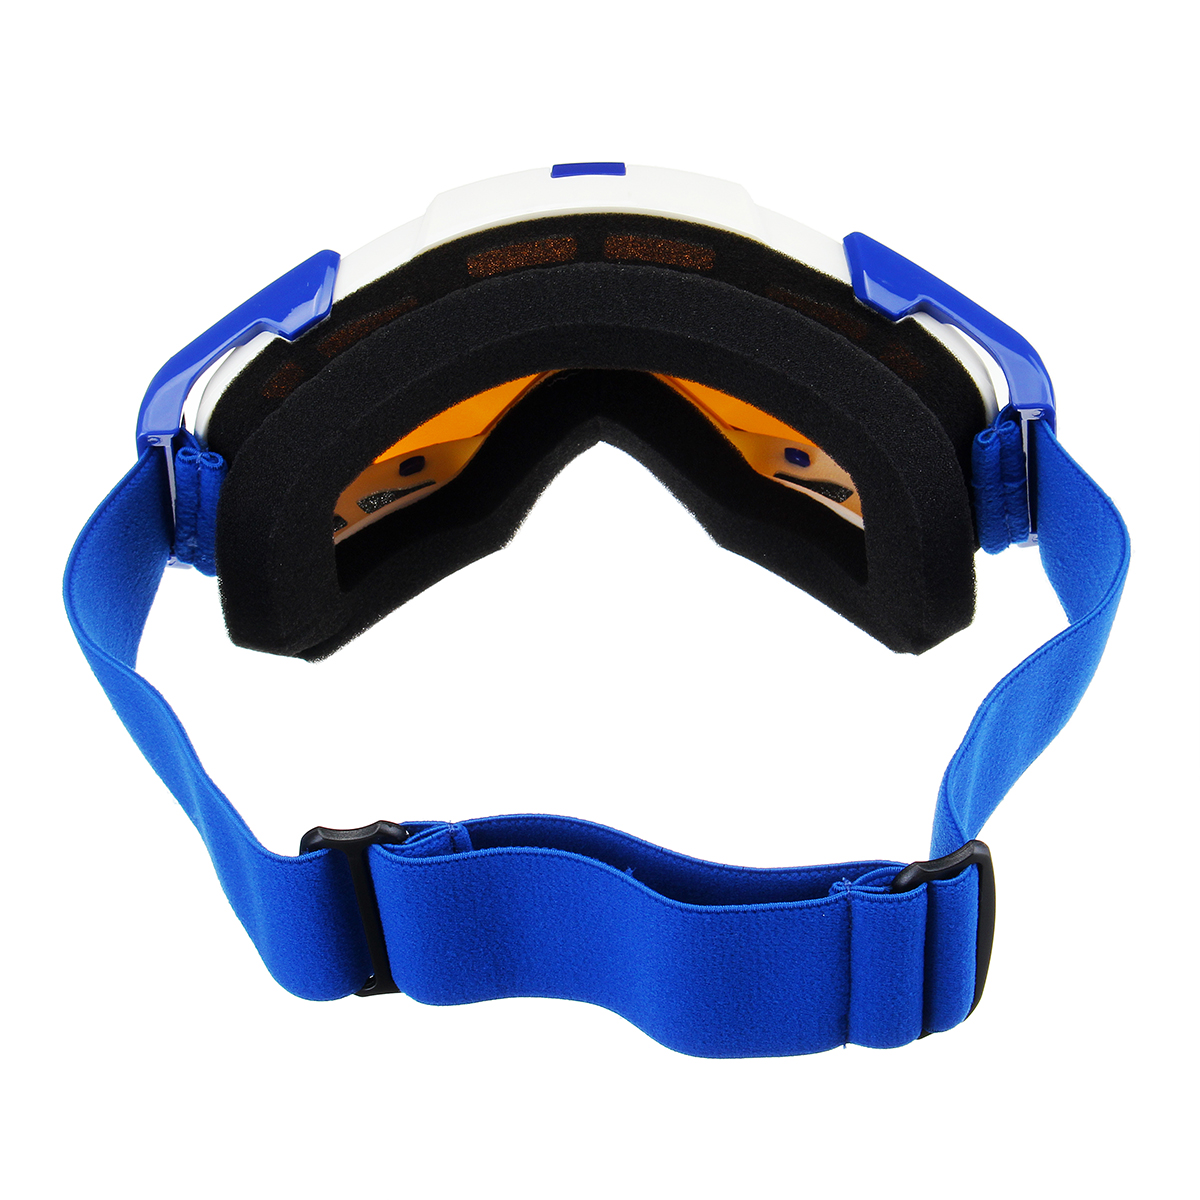 Detachable Motorcycle Ski Goggles Anti Radiation UV Protection Windproof Riding Sunglasses for Adults